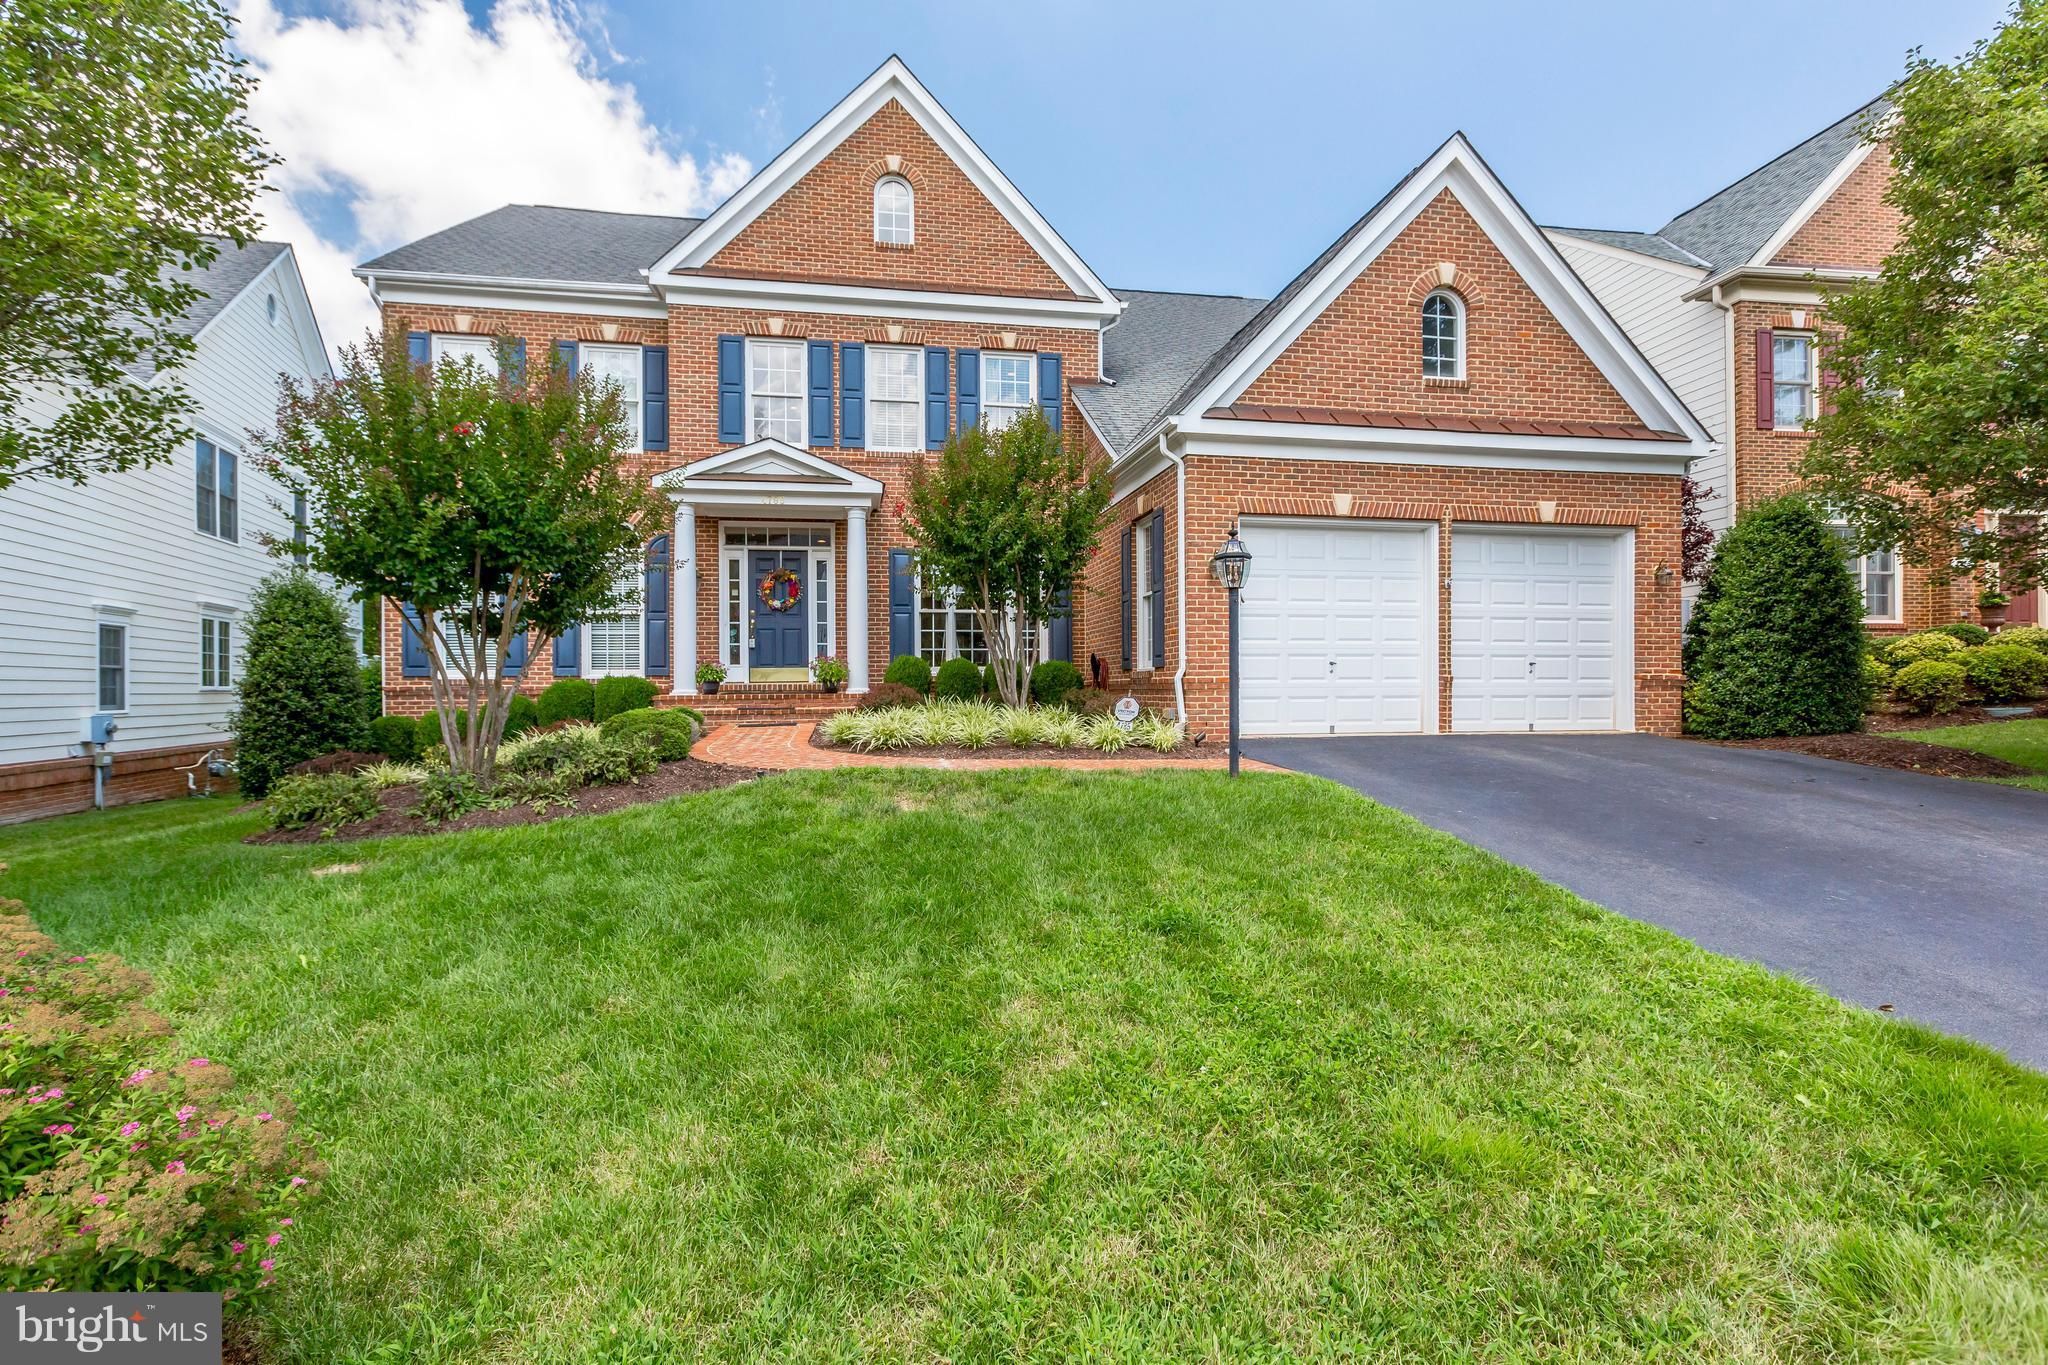 Superb 5BR/5.5BA Basheer Cliffhurst updated & expanded overlooking 14th fairway! Gleaming hardwoods on main! Chef's granite eat-in kitchen open to sunroom & 2-story FR! In-law suite on main! Office on main! Huge master suite w/ sitting room, dual head shower & soaking tub! Finished walk-up basement w/ full BA & space for 6th BR! Custom Trex deck w/built in gas grill! More photos in tour!